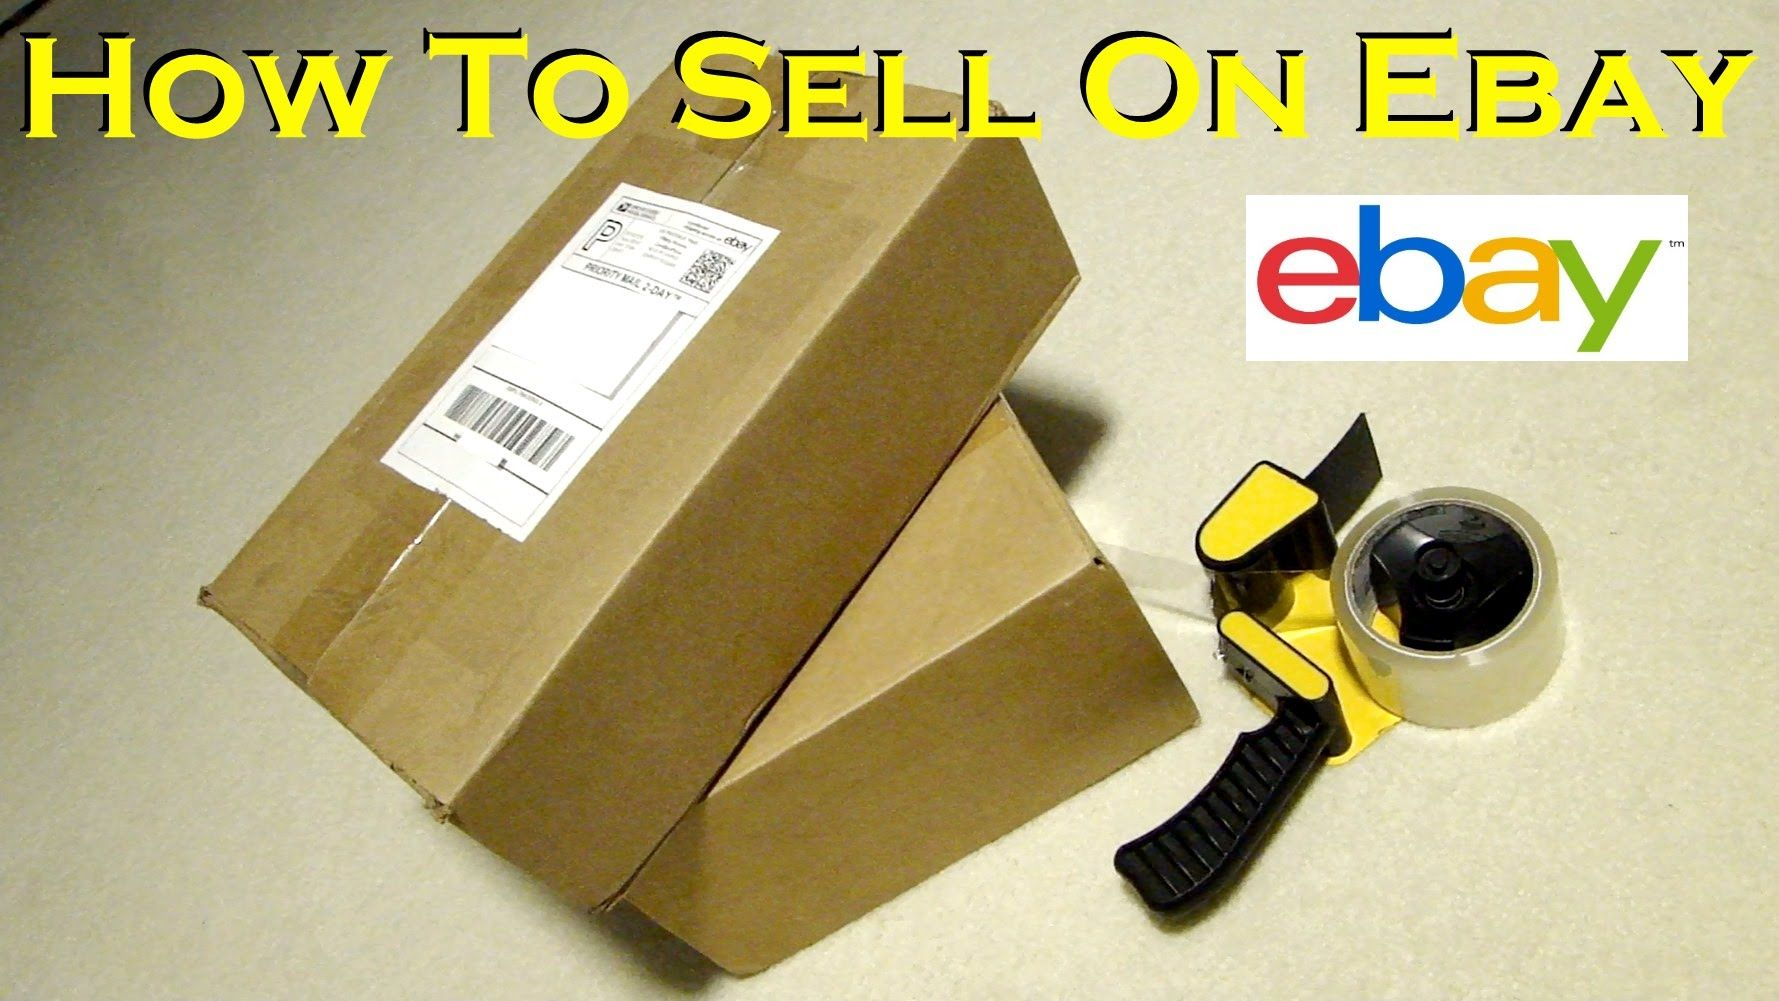 How To Sell On Ebay Complete Guide Youtube Selling On Ebay Things To Sell Ebay Hacks